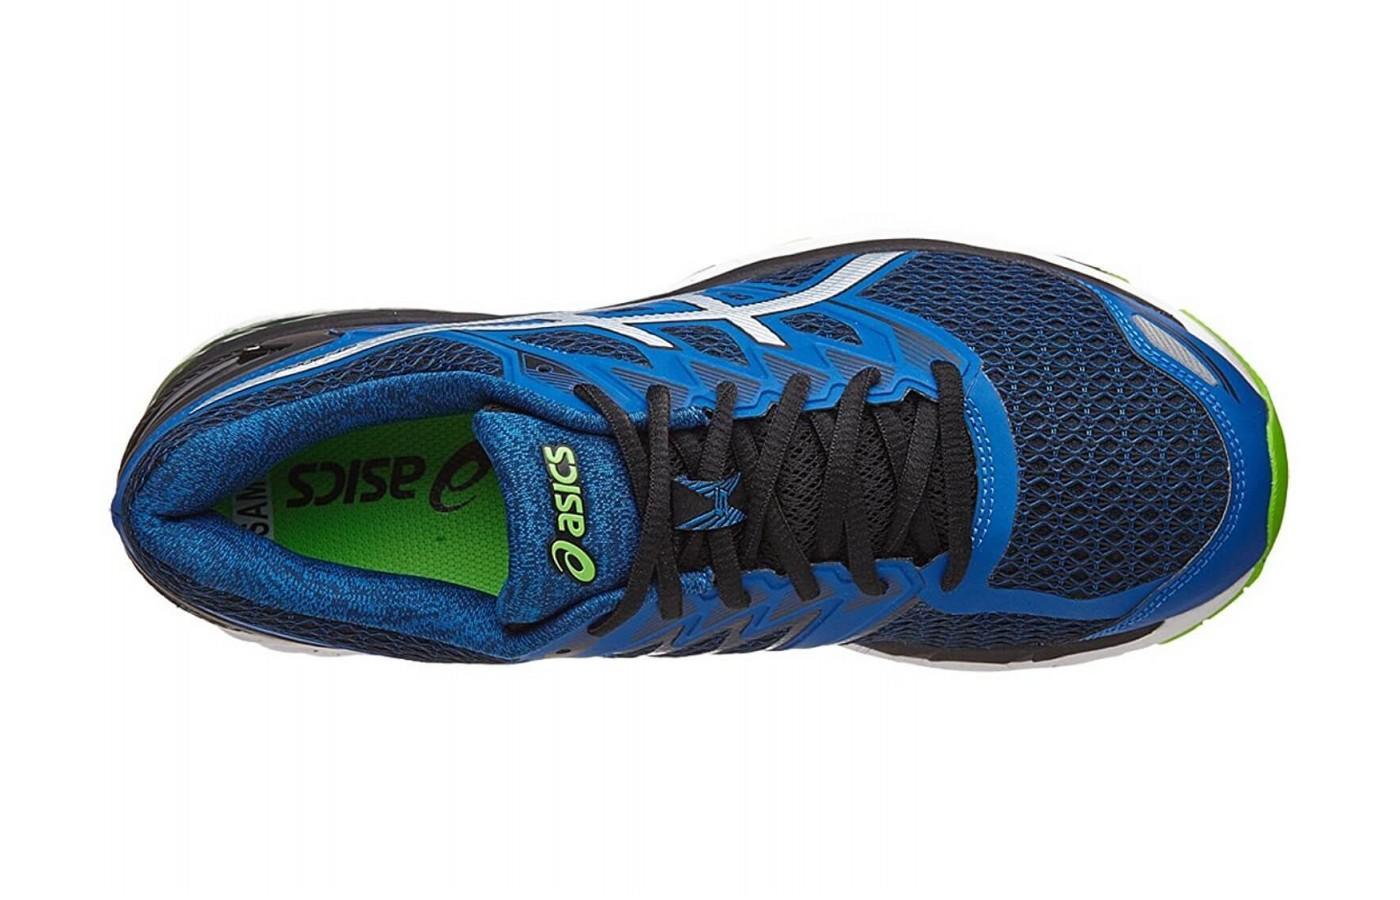 The upper of the Asics GT 3000 5 provides breathability and support